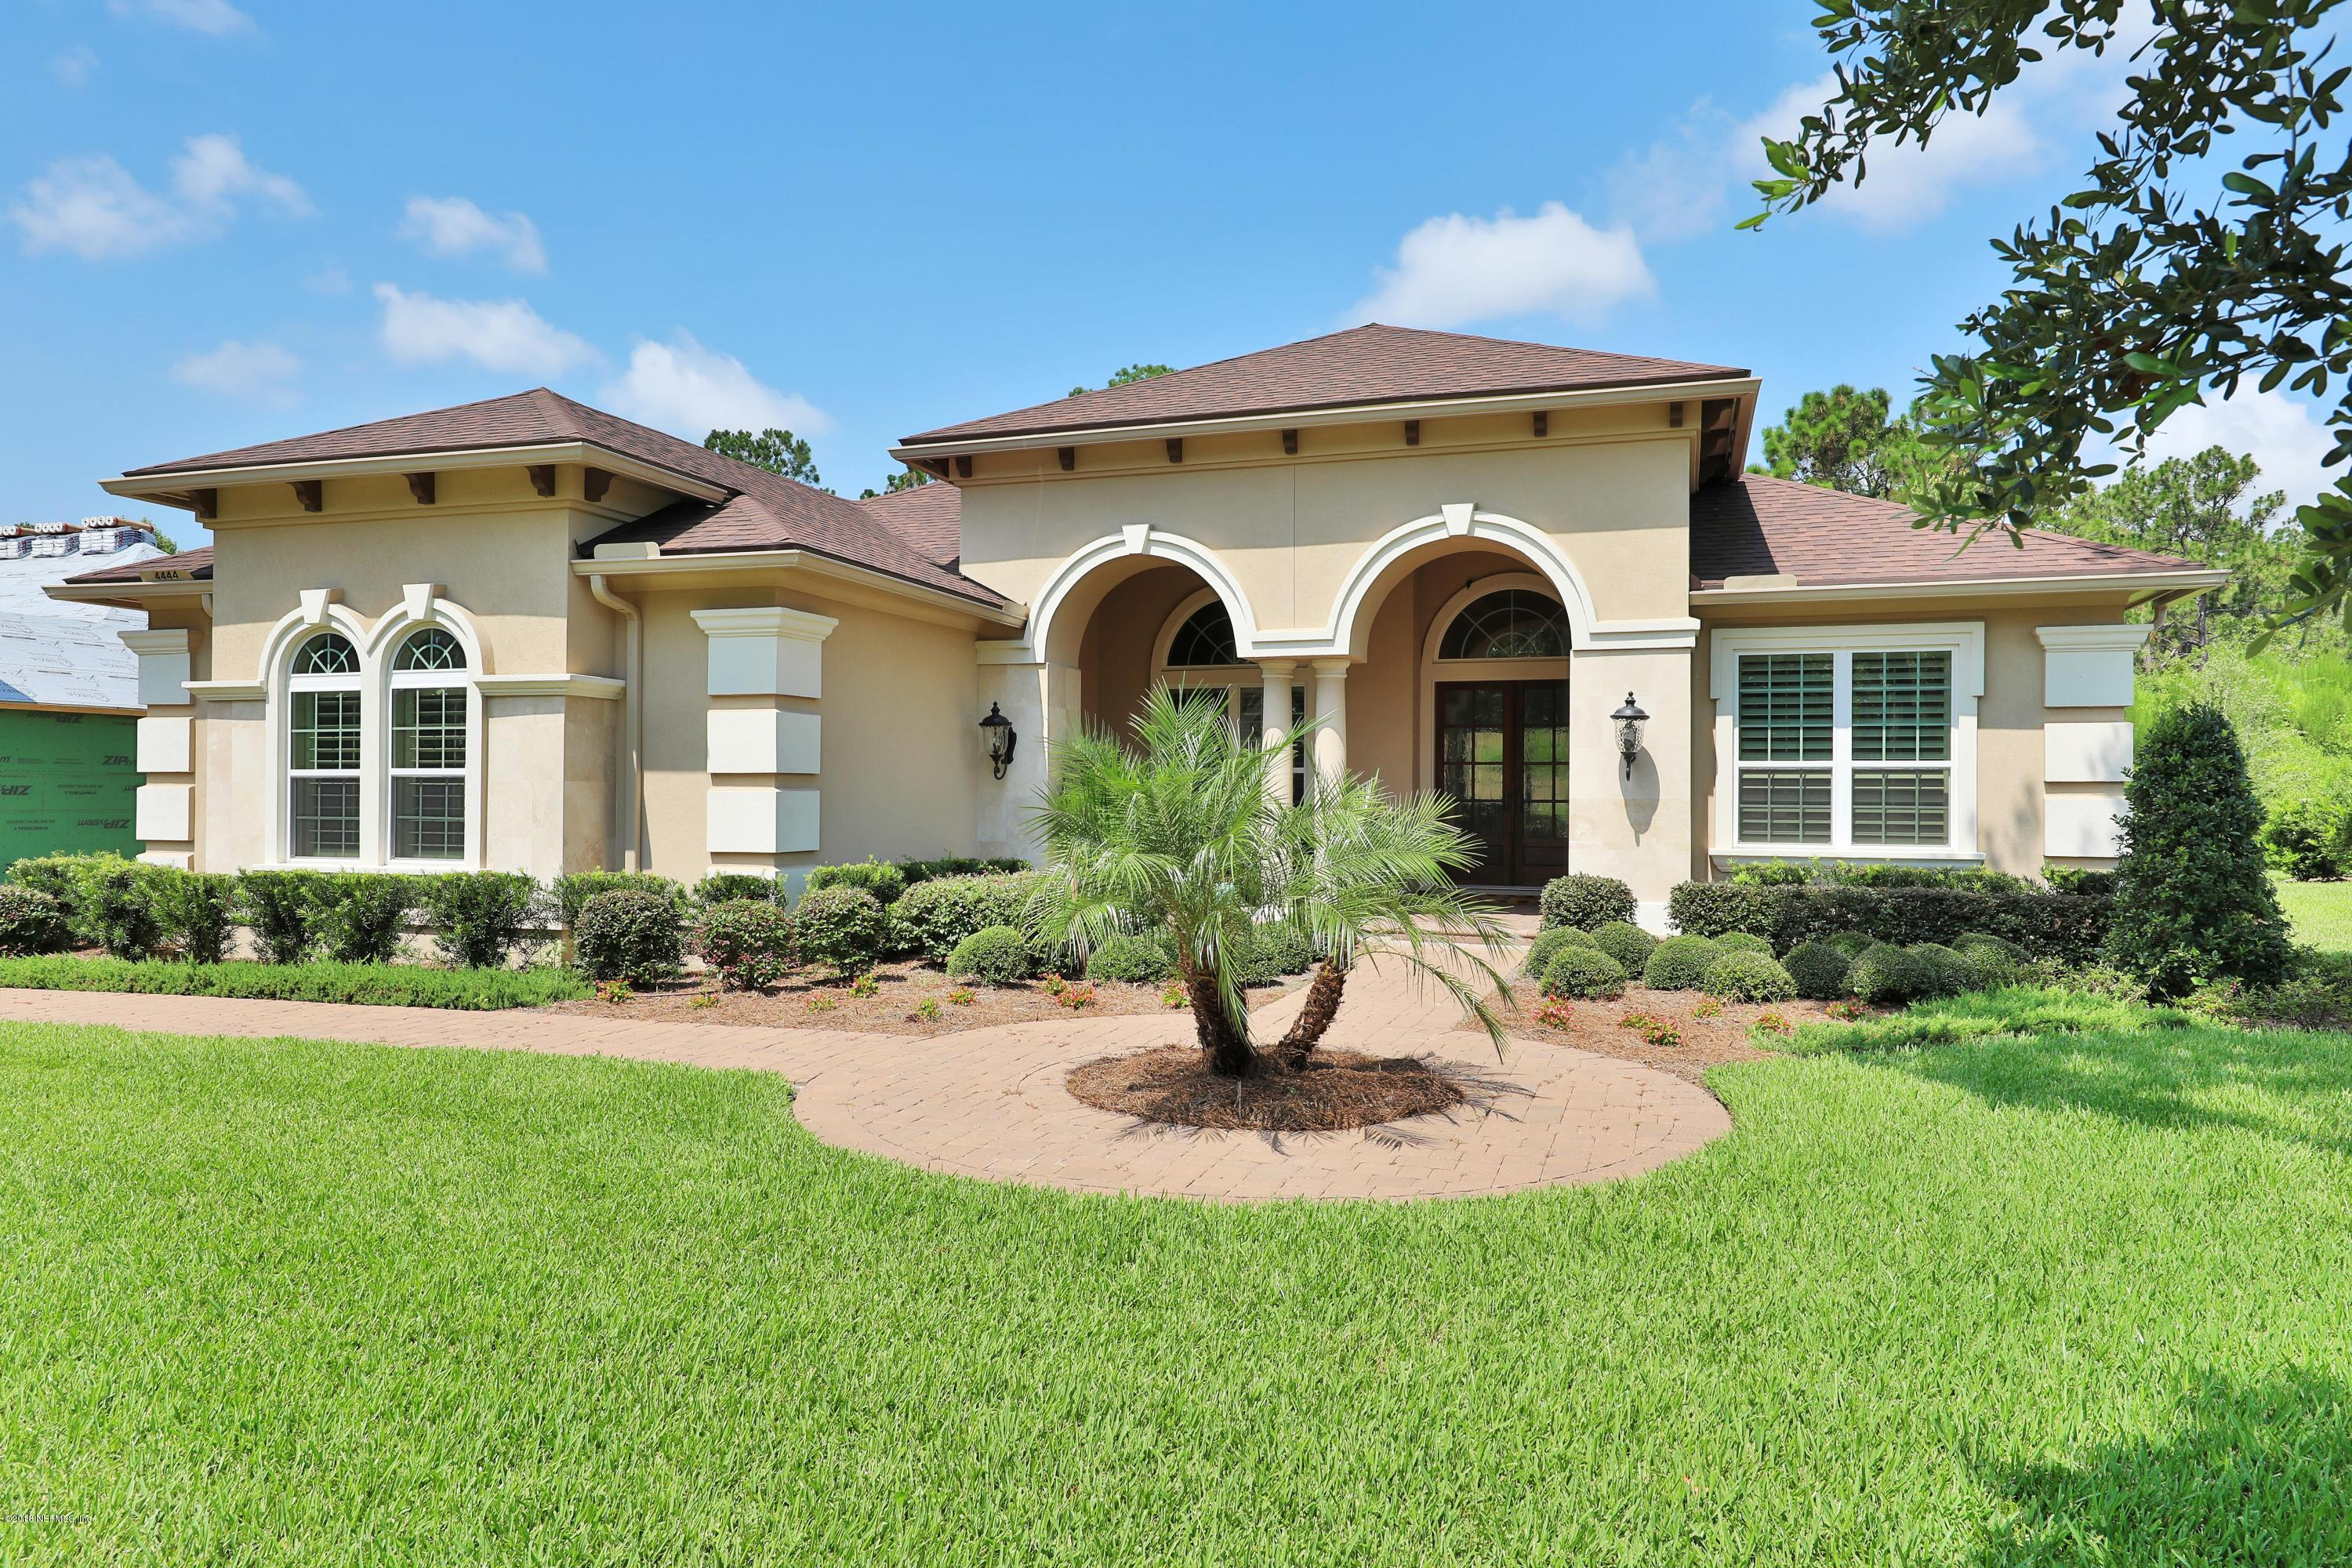 4444 HUNTERSTON, JACKSONVILLE, FLORIDA 32224, 4 Bedrooms Bedrooms, ,3 BathroomsBathrooms,Residential - single family,For sale,HUNTERSTON,997576